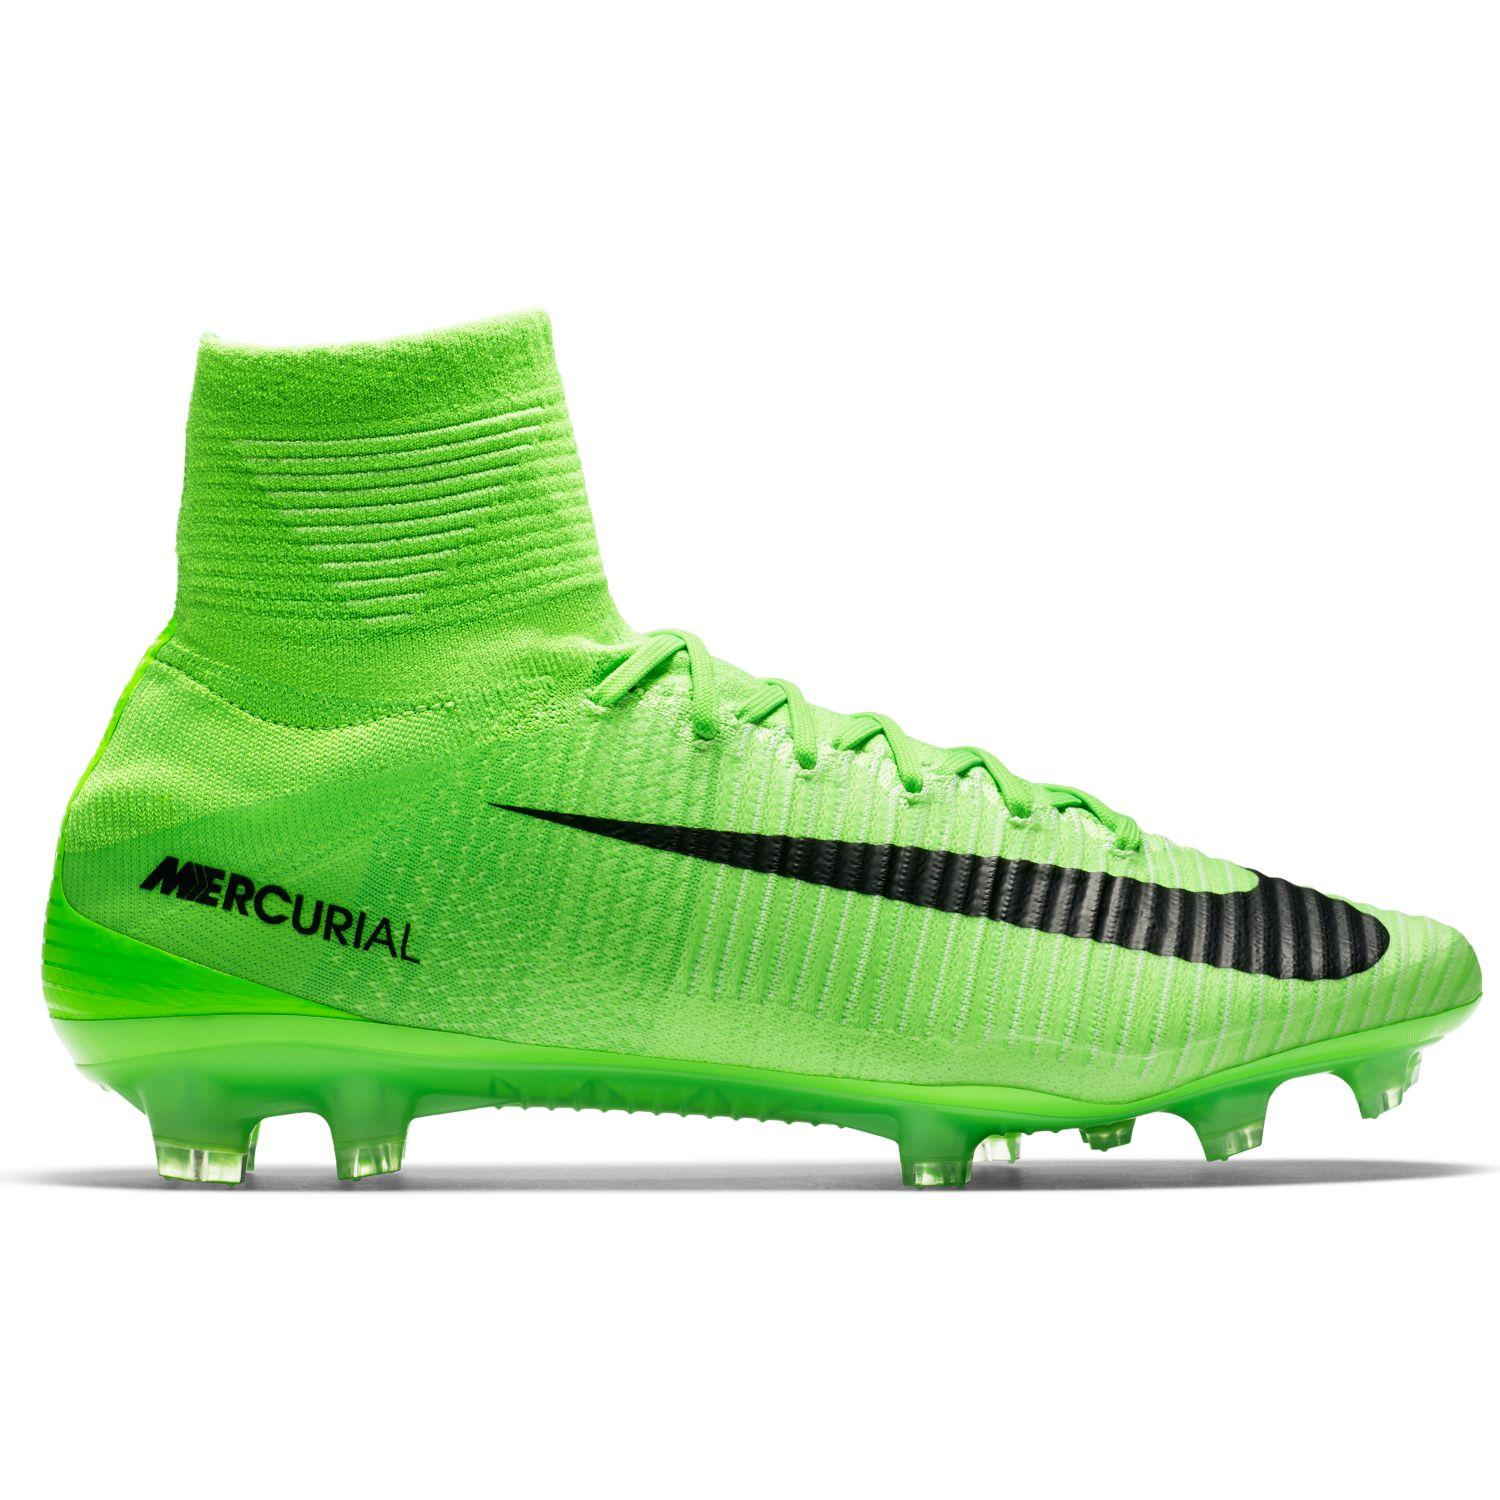 Pro Idee Schuhe Nike Football Shoes Mercurial Superfly V Fg